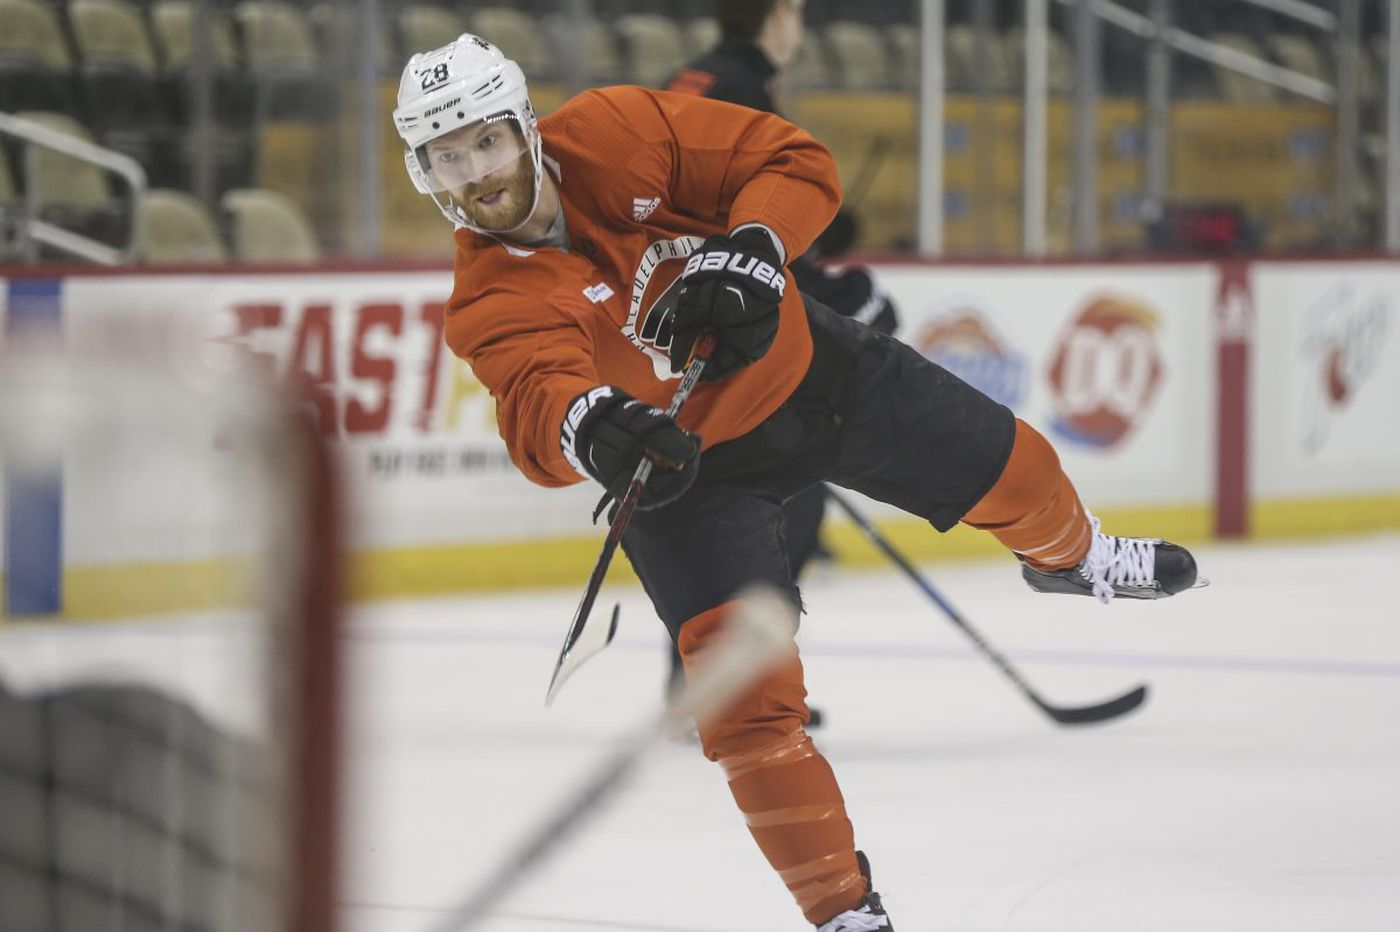 Flyers' Claude Giroux not disciplined for 'hit' in Game 2 vs. Penguins